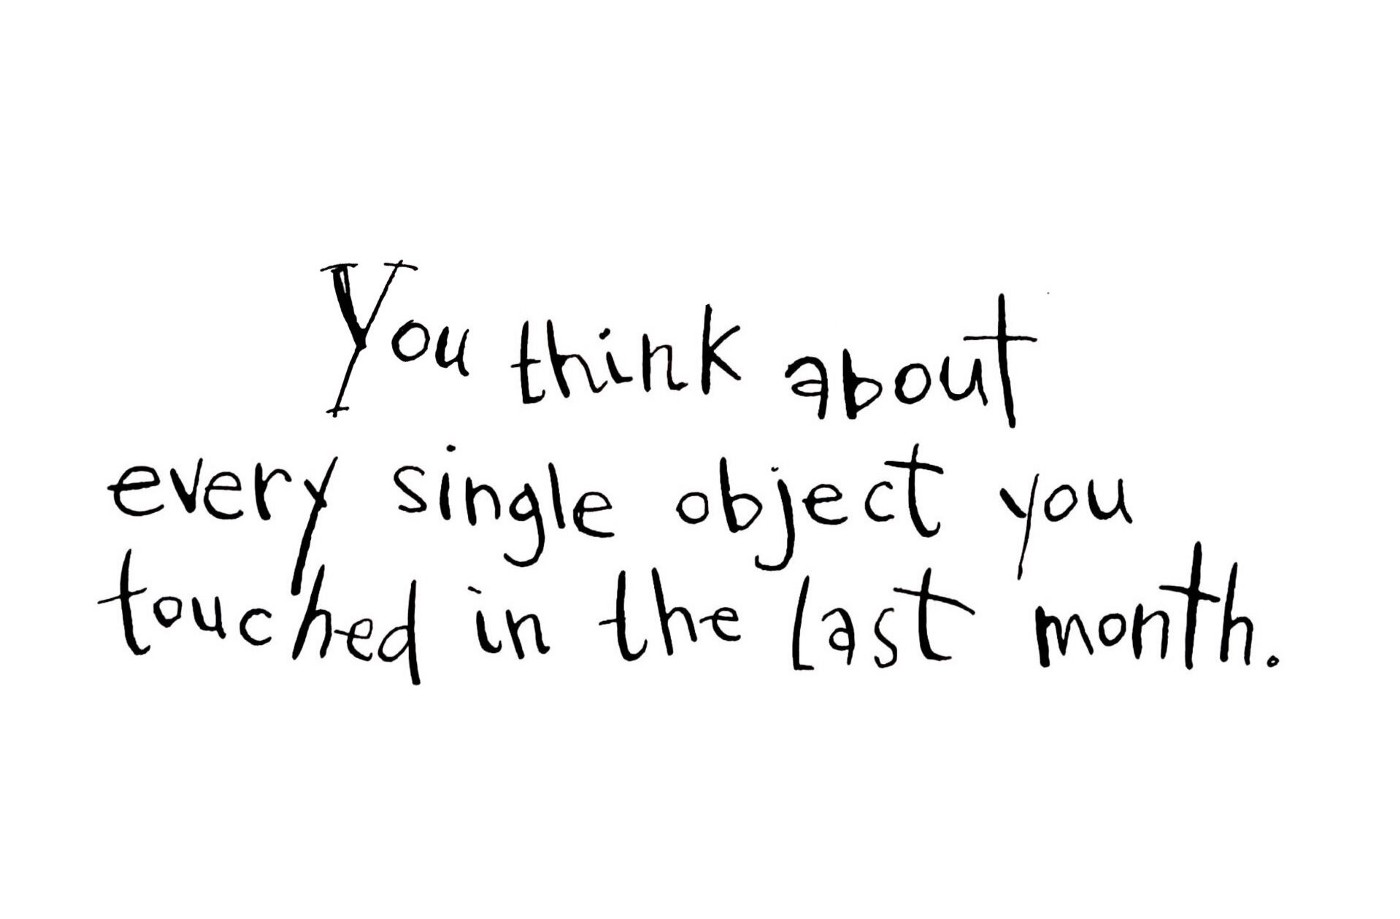 You think about every single object you touched in the last month.